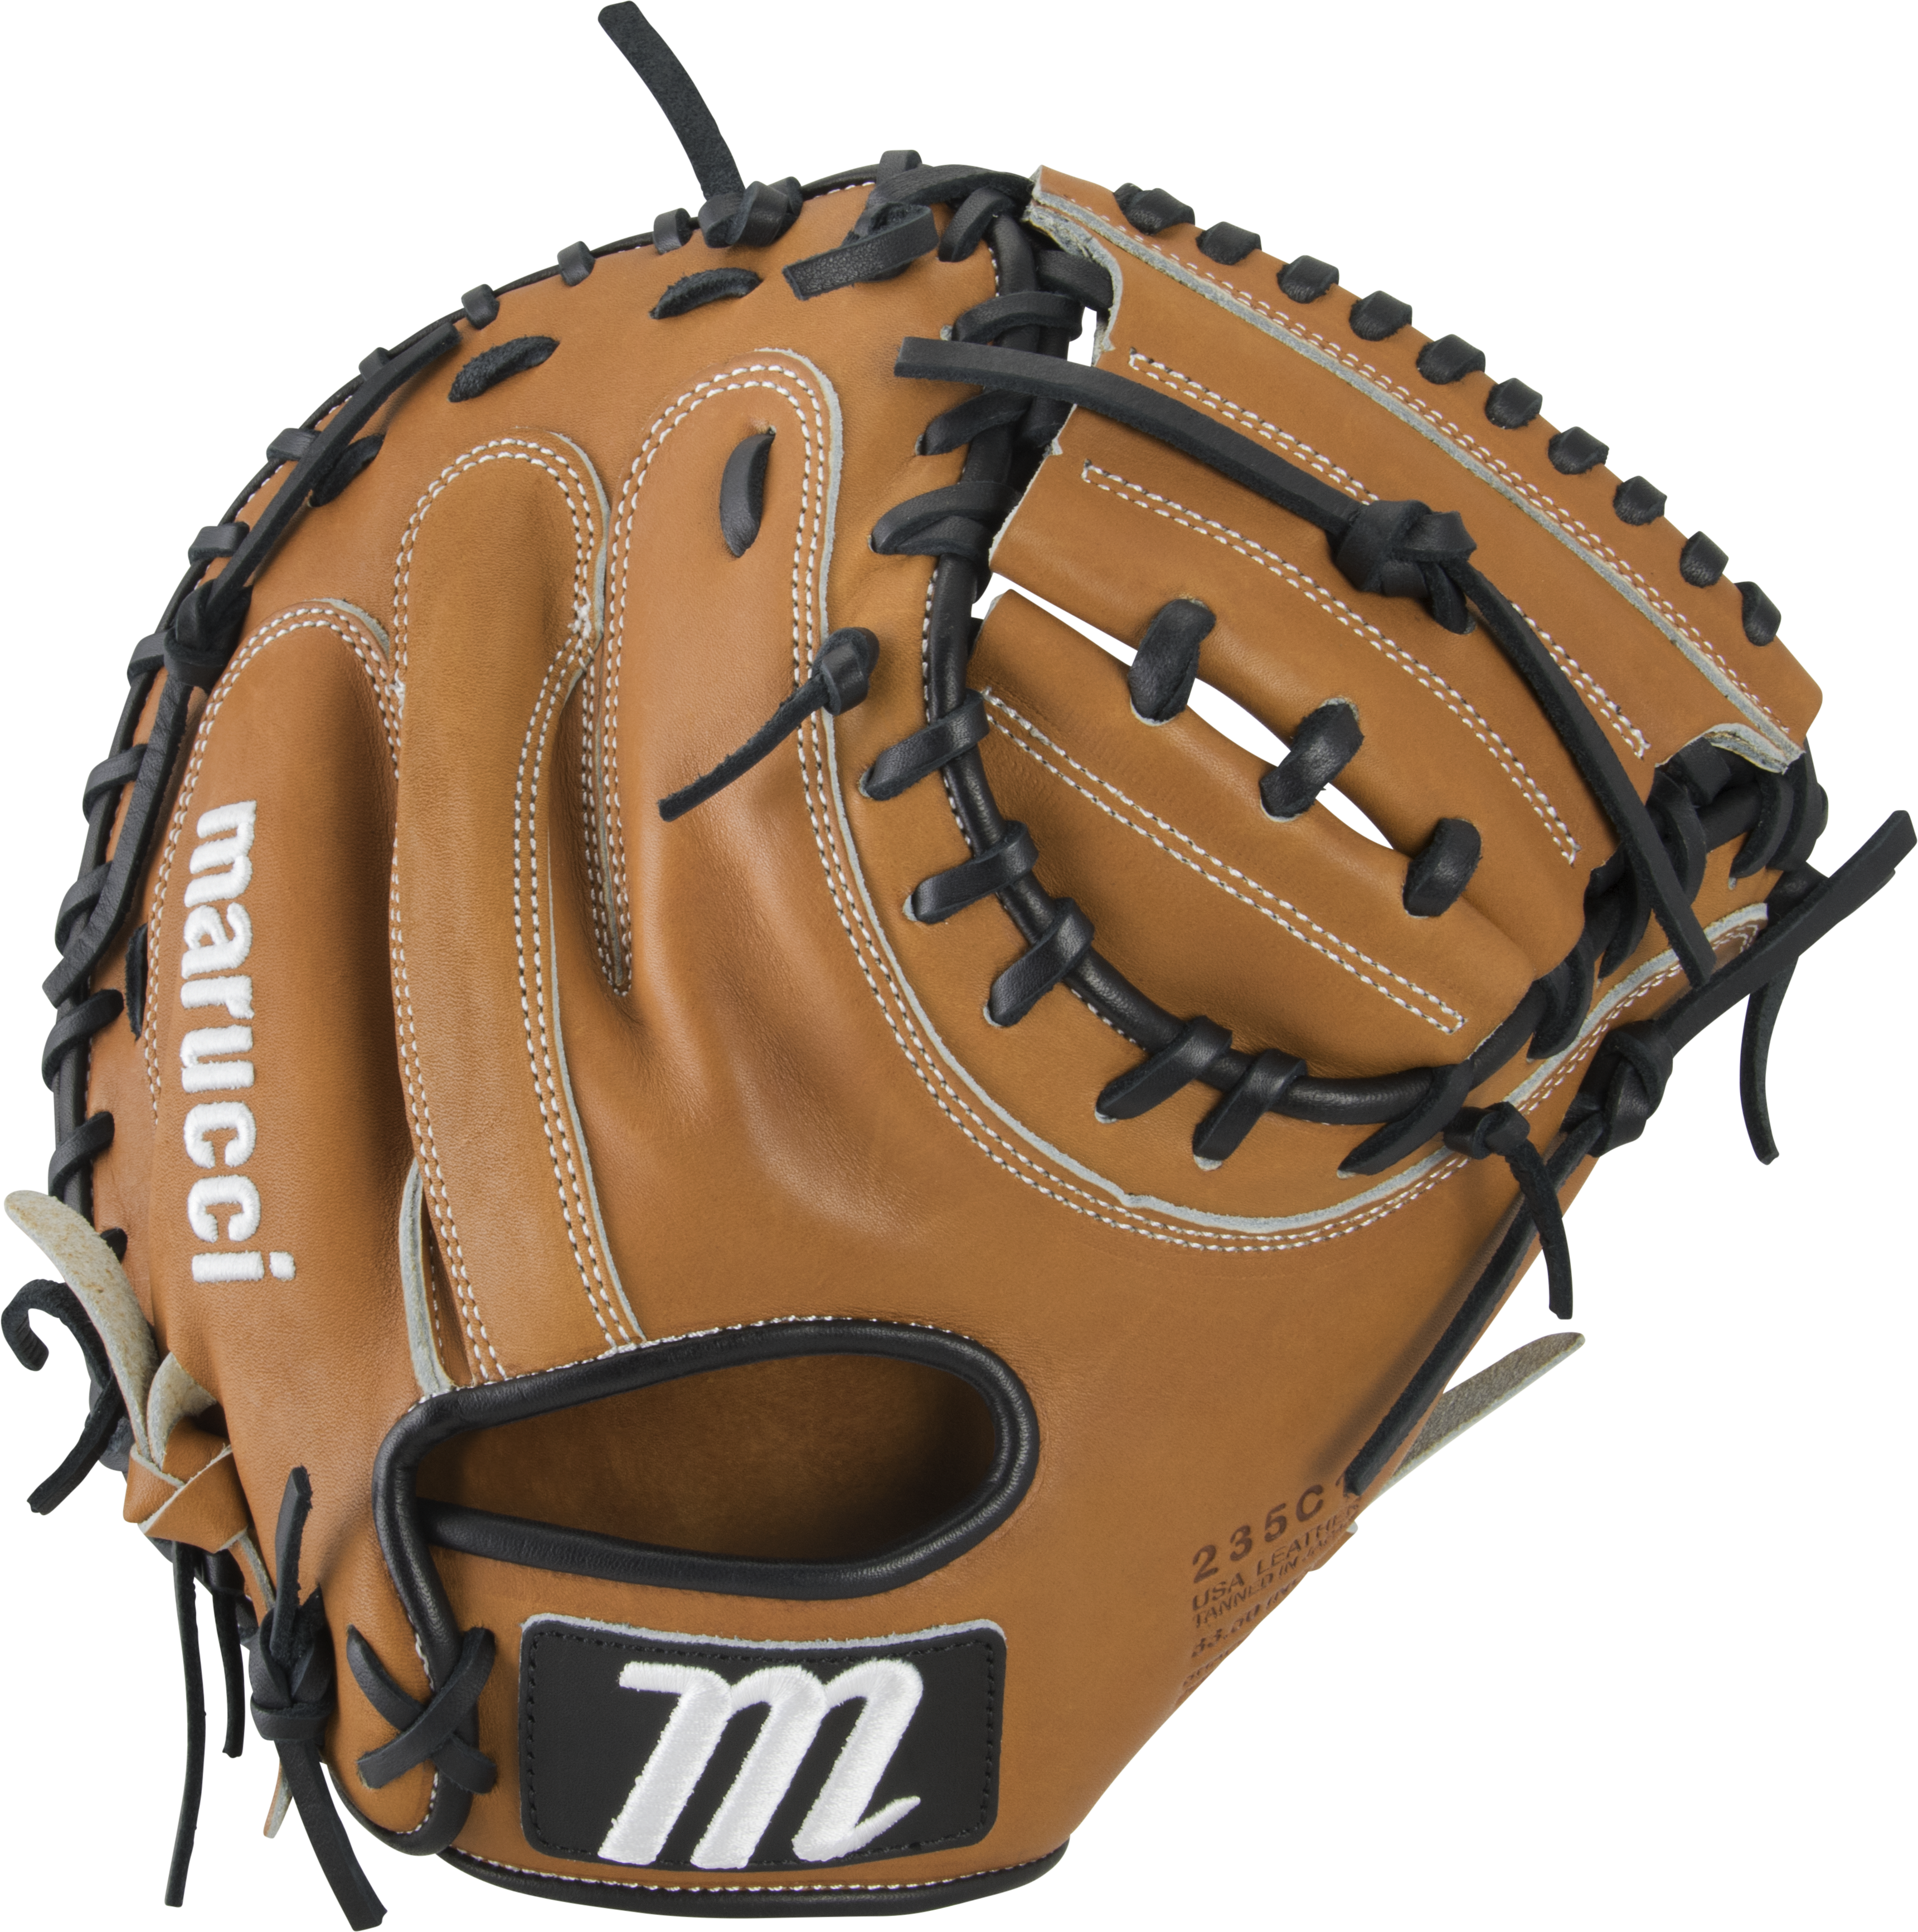 marucci-capitol-33-5-catchers-mitt-baseball-glove-235c1-two-one-piece-solid-web-right-hand-throw MFGCP235C1-TFBK-RightHandThrow Marucci  849817099346 Premium Japanese-tanned USA Kip leather combines ideal stiffness with lightweight feel